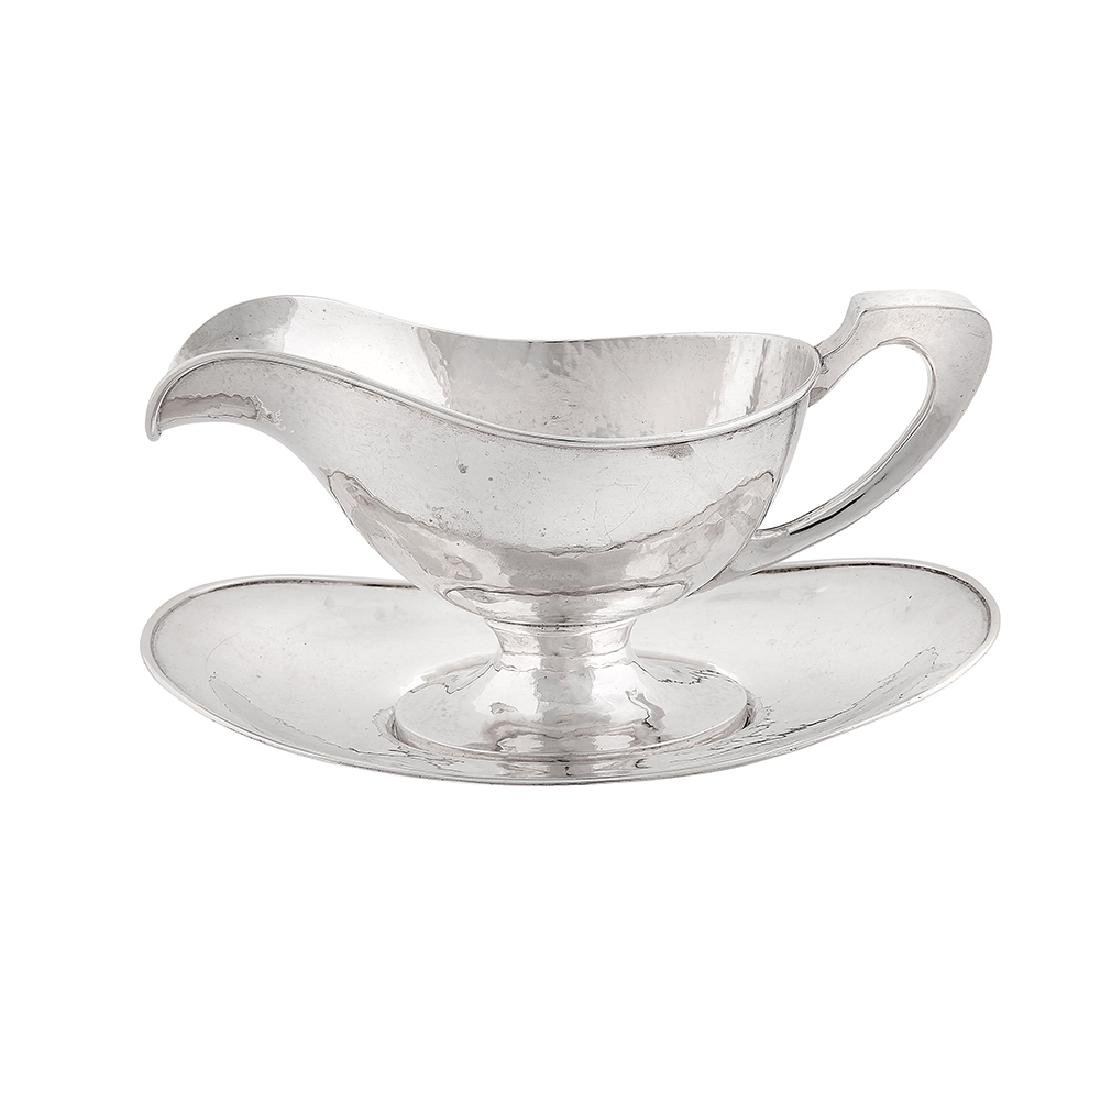 Edward H. Breese gravy boat or sauce server